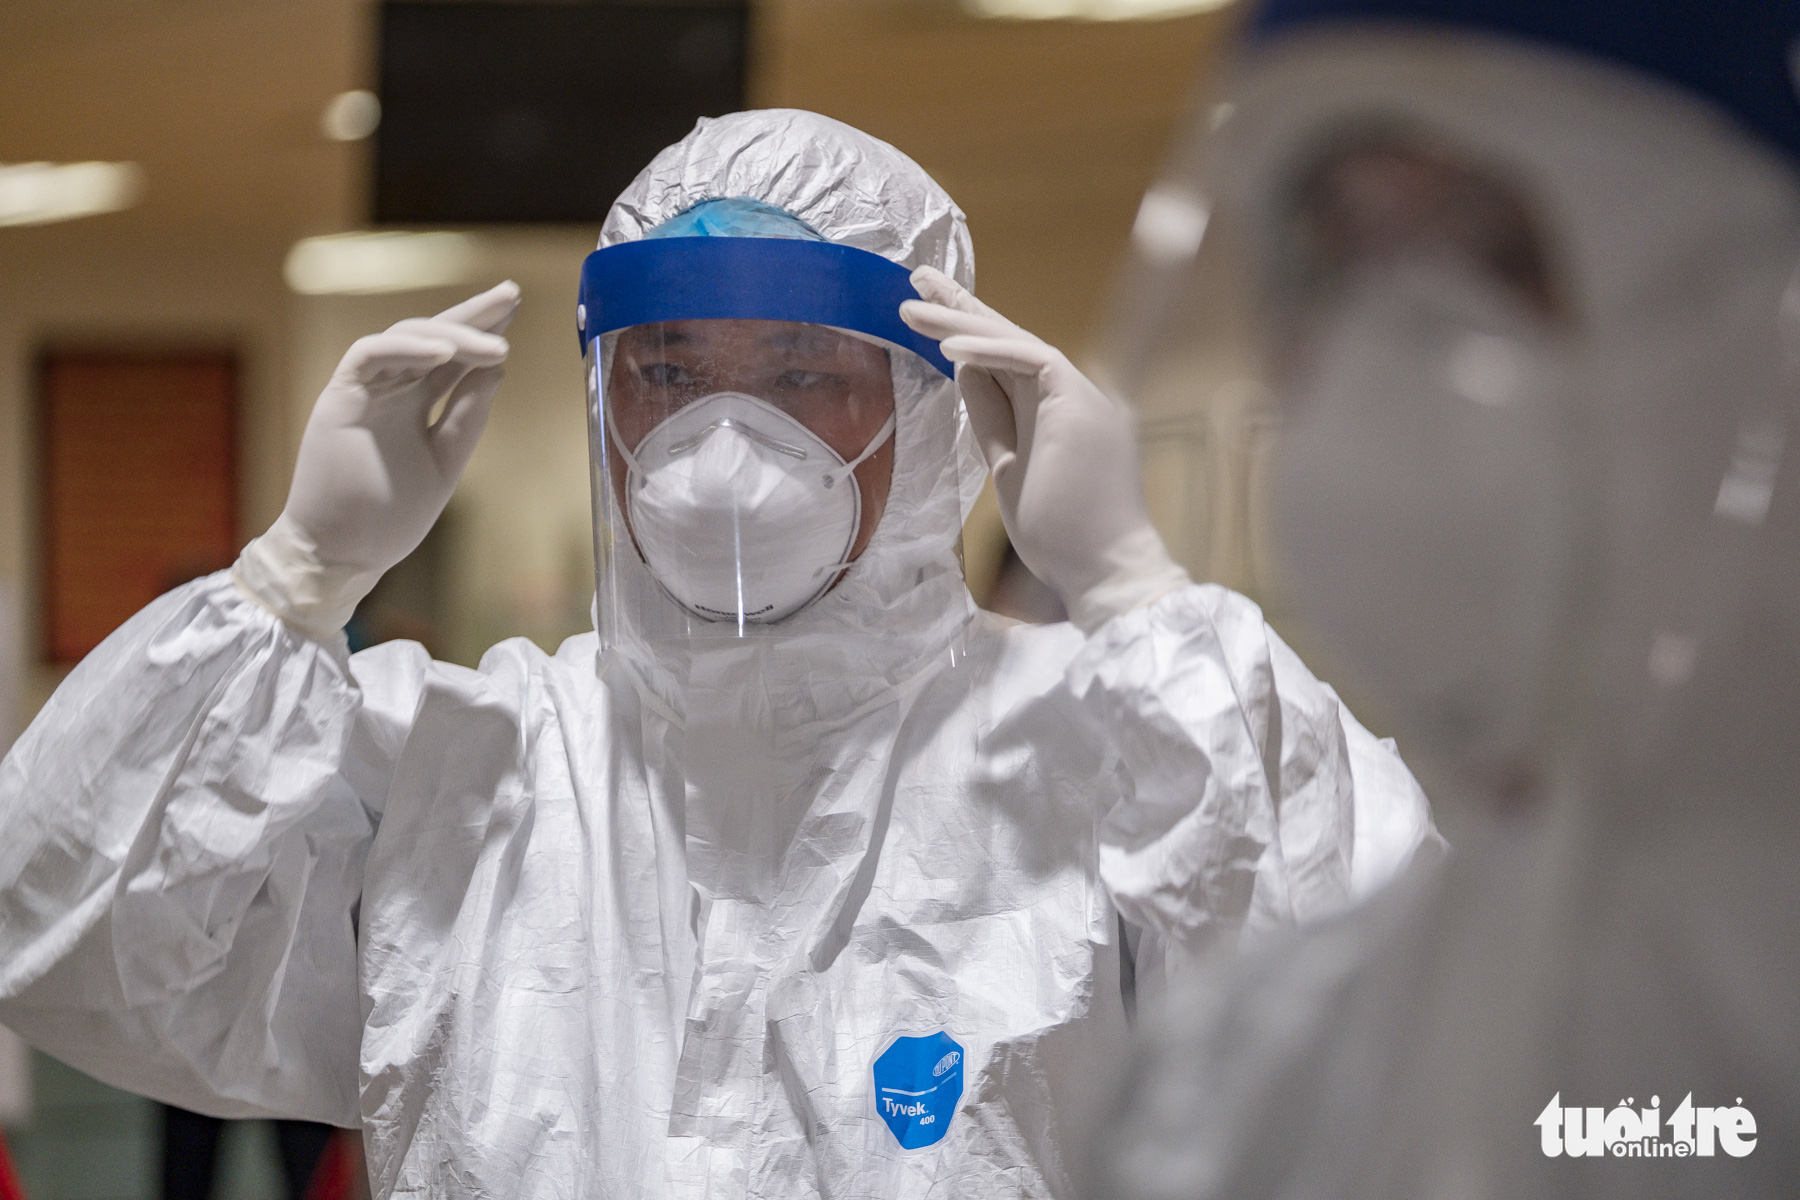 A health worker wears protective suit and gears while performing duty at Noi Bai International Airport in Hanoi, Vietnam, March 18, 2020. Photo: Nam Tran / Tuoi Tre